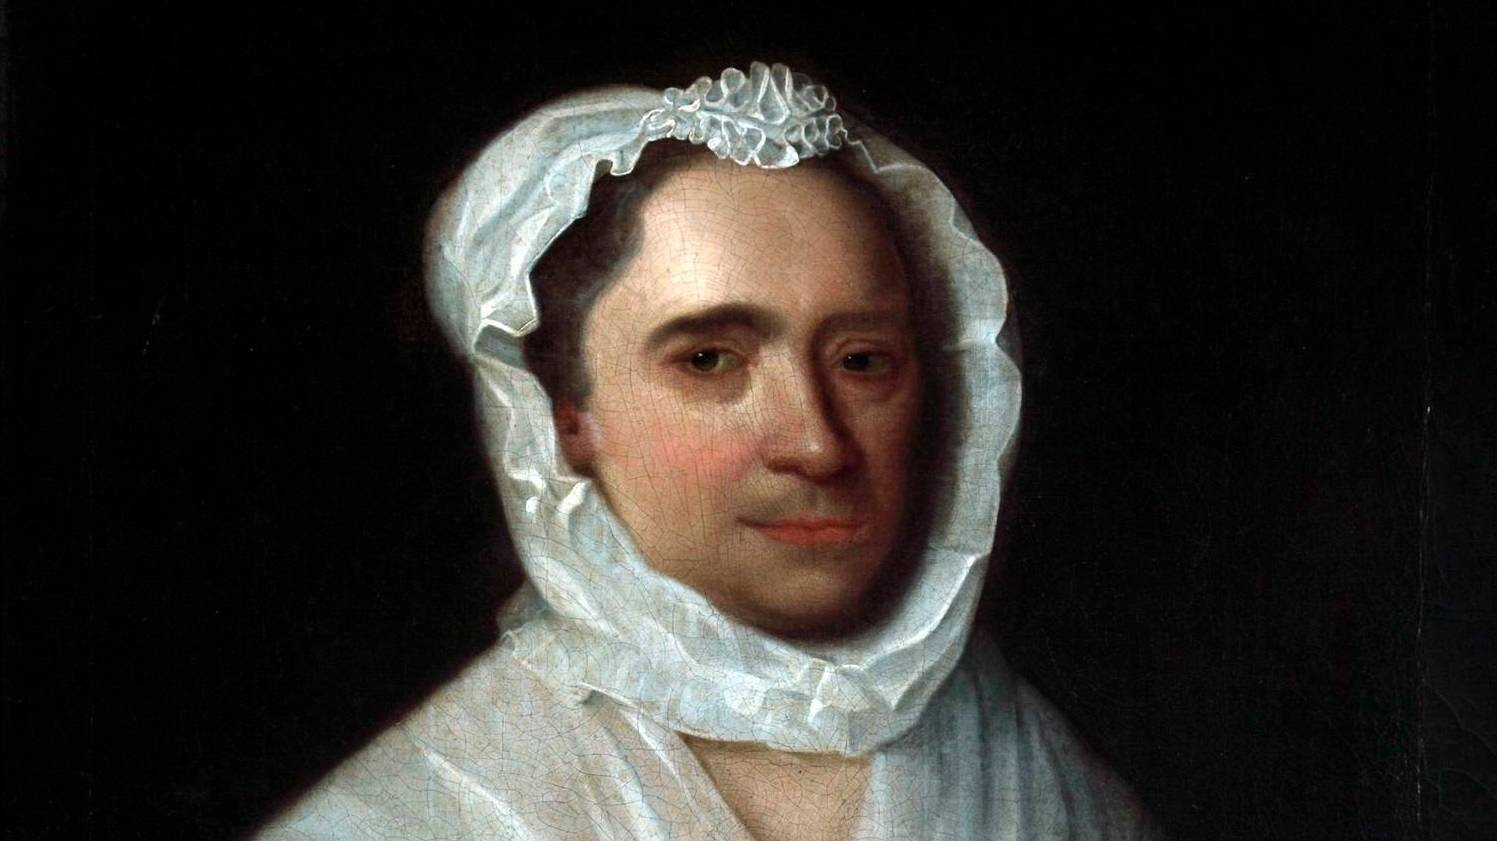 Detail of a portrait of a woman wearing a blue silk dress holding a jasmine flower with a white bonnet and collar. She holds a jasmine flower in her right hand. The lower half of her face has a five o'clock shadow.